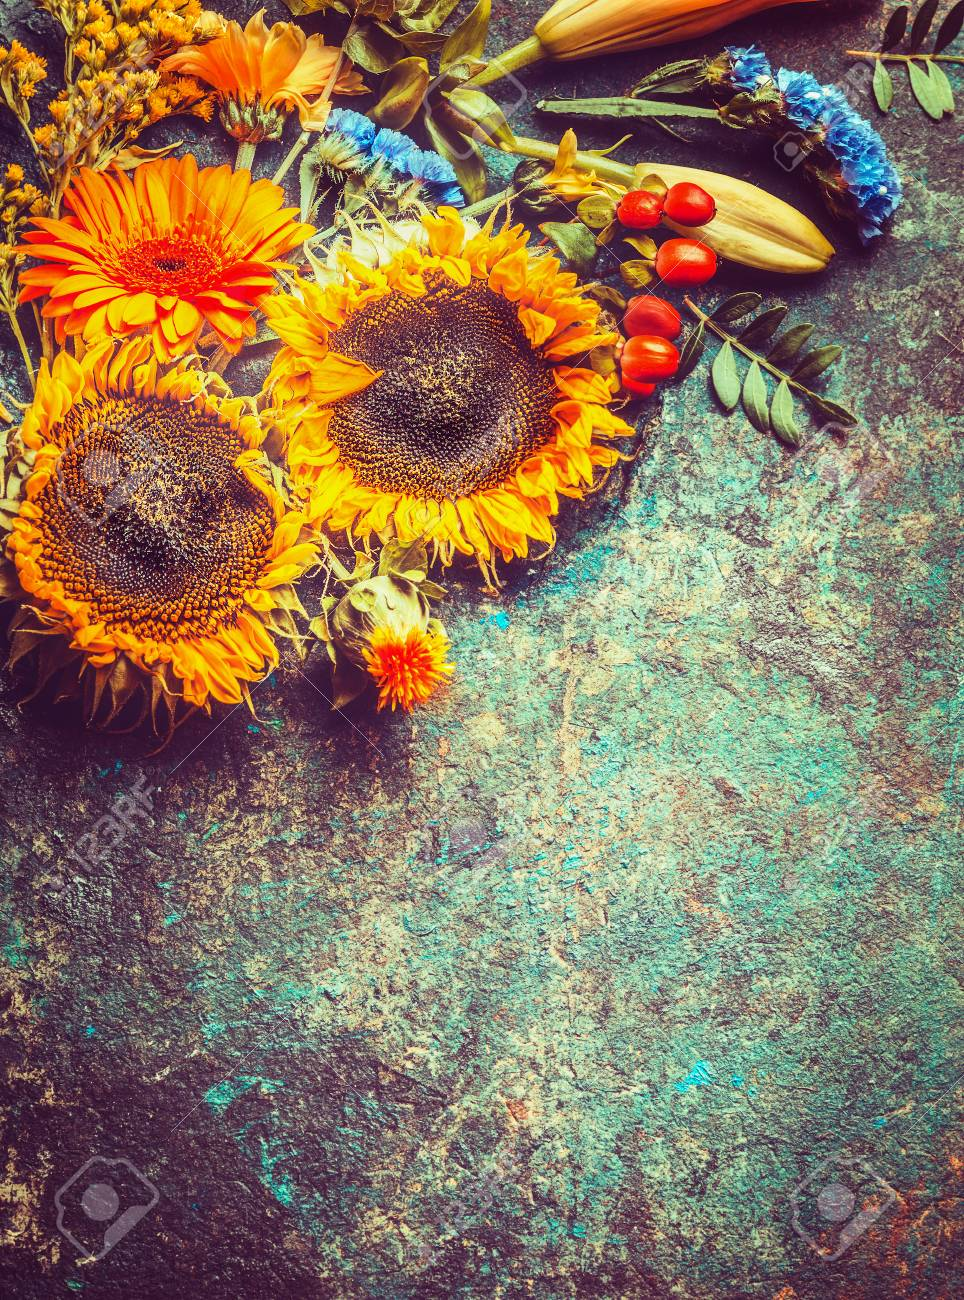 Autumn Floral Composing With Sunflowers On Vintage Rustic